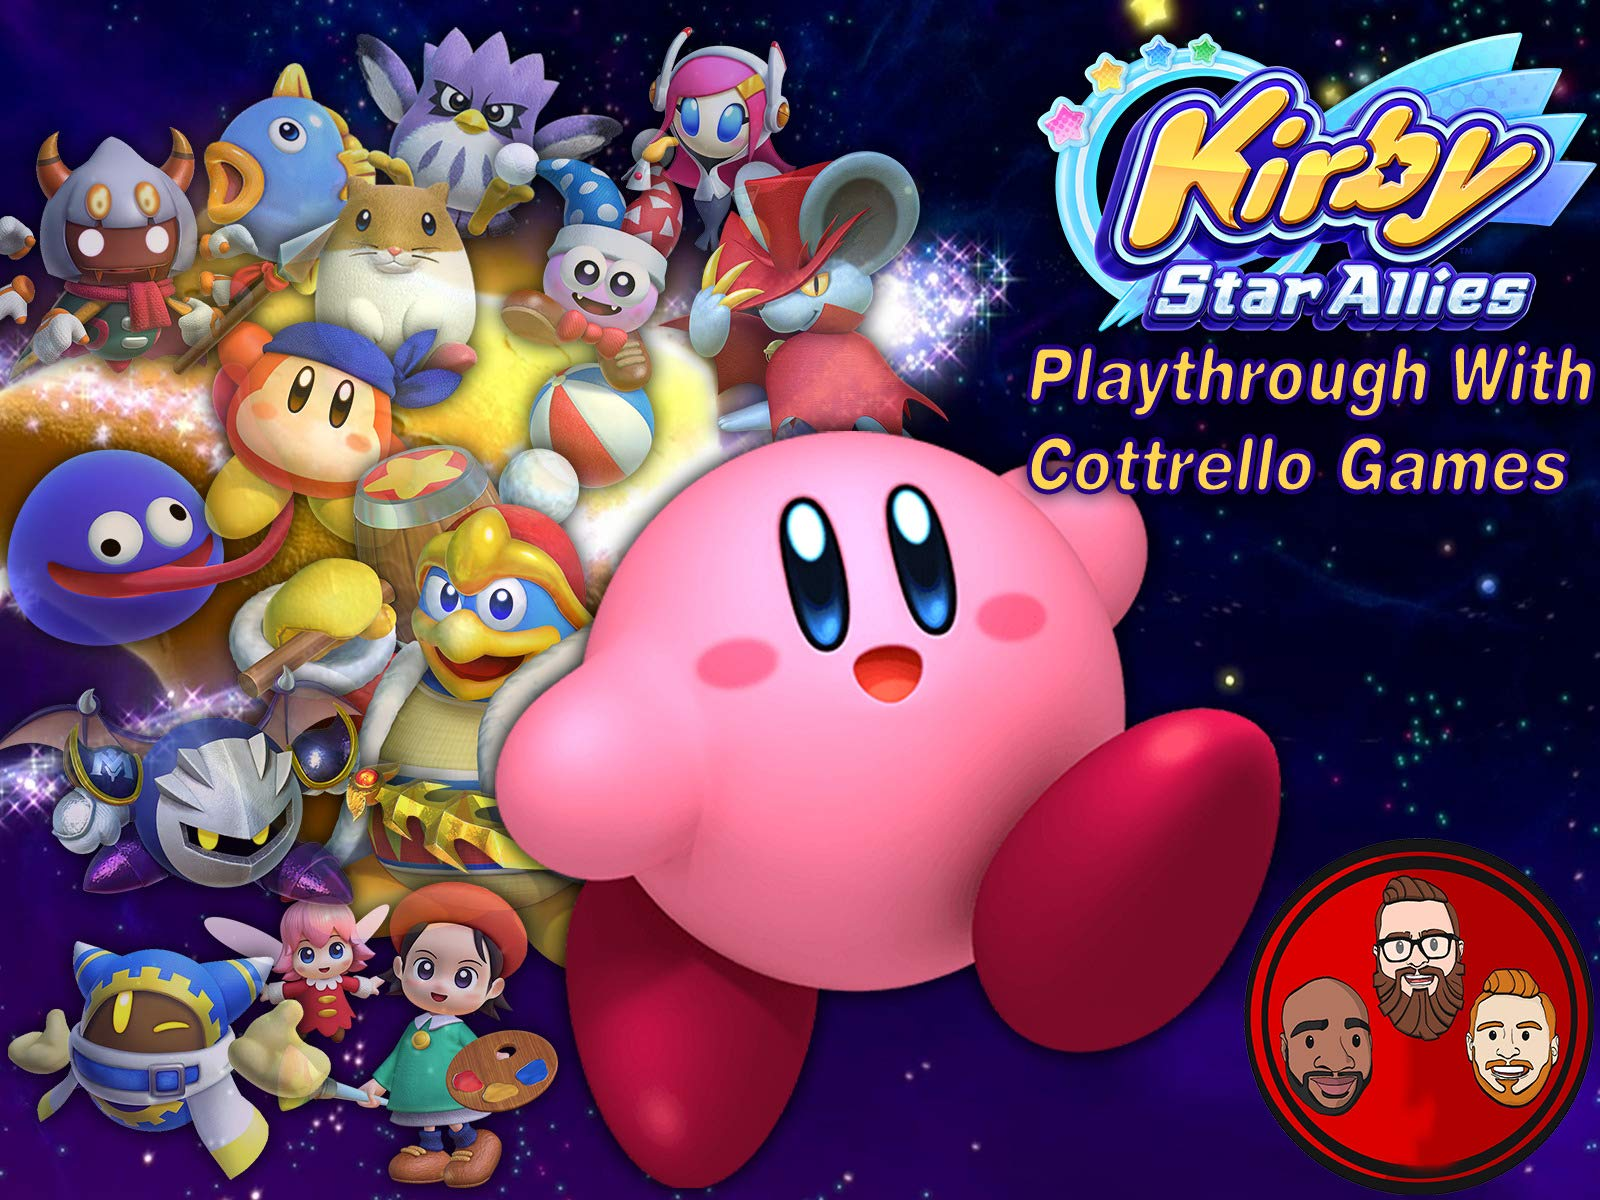 Kirby Star Allies Multiplayer Playthrough with Cottrello Games